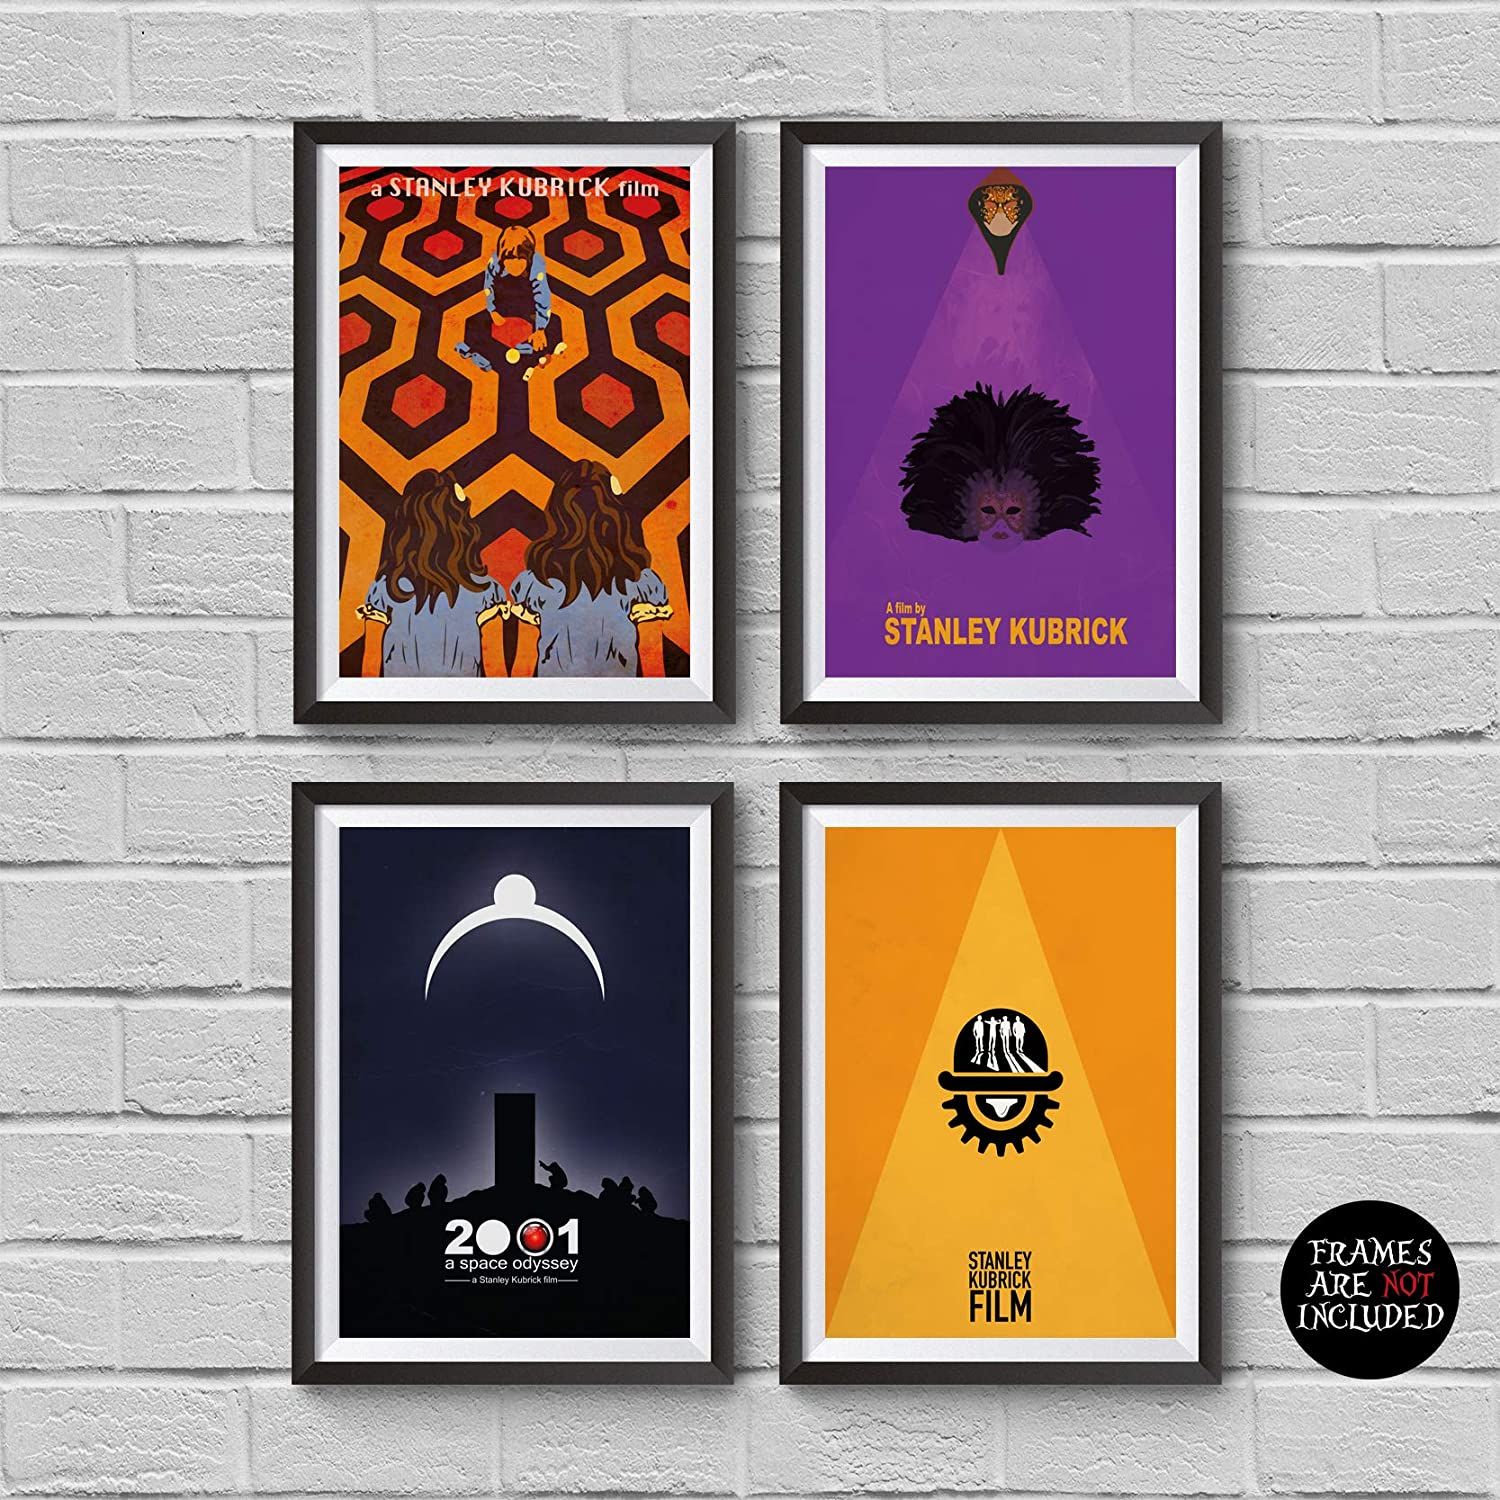 Stanley Kubrick Minimalist Poster Set of 4 Films The Shining A Clockwork Orange 2001: A Space Odyssey Eyes Wide Shut Print Cult Movies Wall Artwork Home Decor Hanging Cool Gift